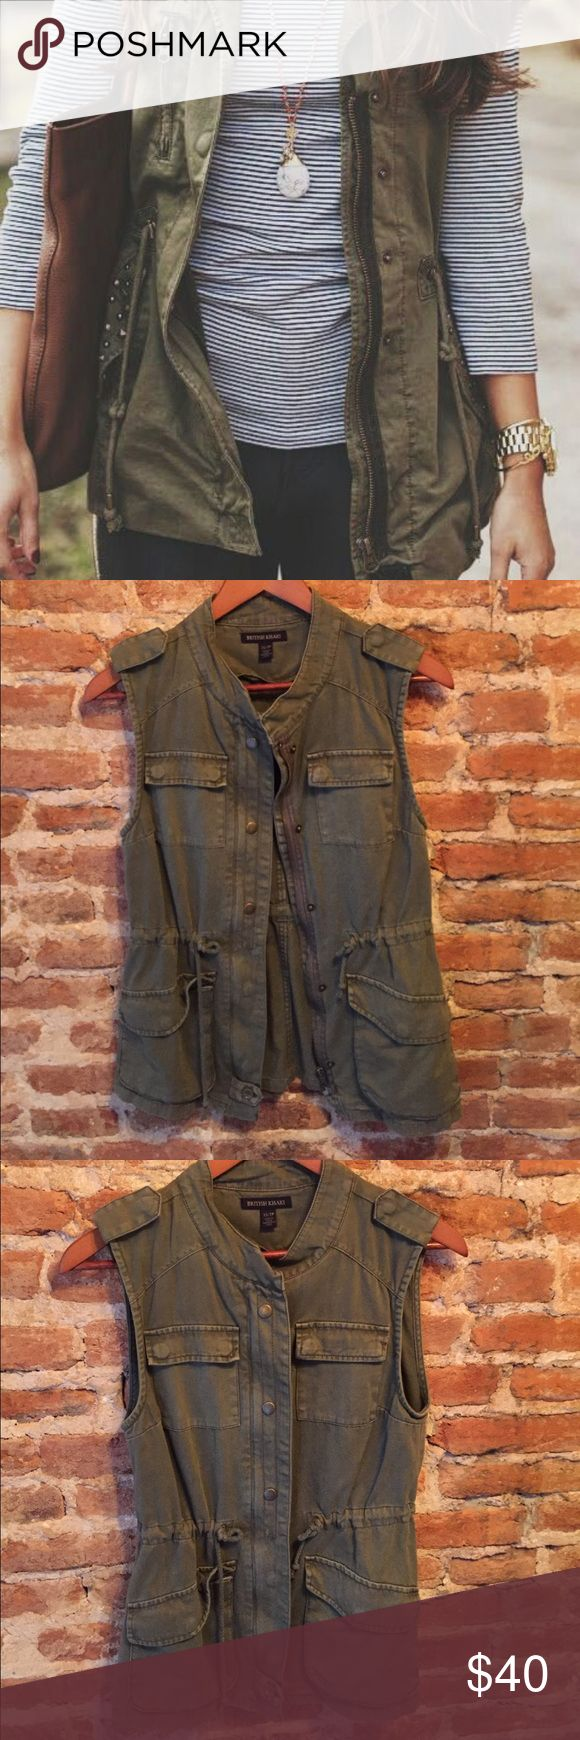 """•British Khaki• Military Green Vest British Khaki Military Green Vest in Excellent Used Condition. Purchased at a Boutique. Cinched Waist. Four Pockets. When Laying Flat: Bust Measures Approximately 15"""", Length 25.5"""" British Khaki Jackets & Coats Vests"""